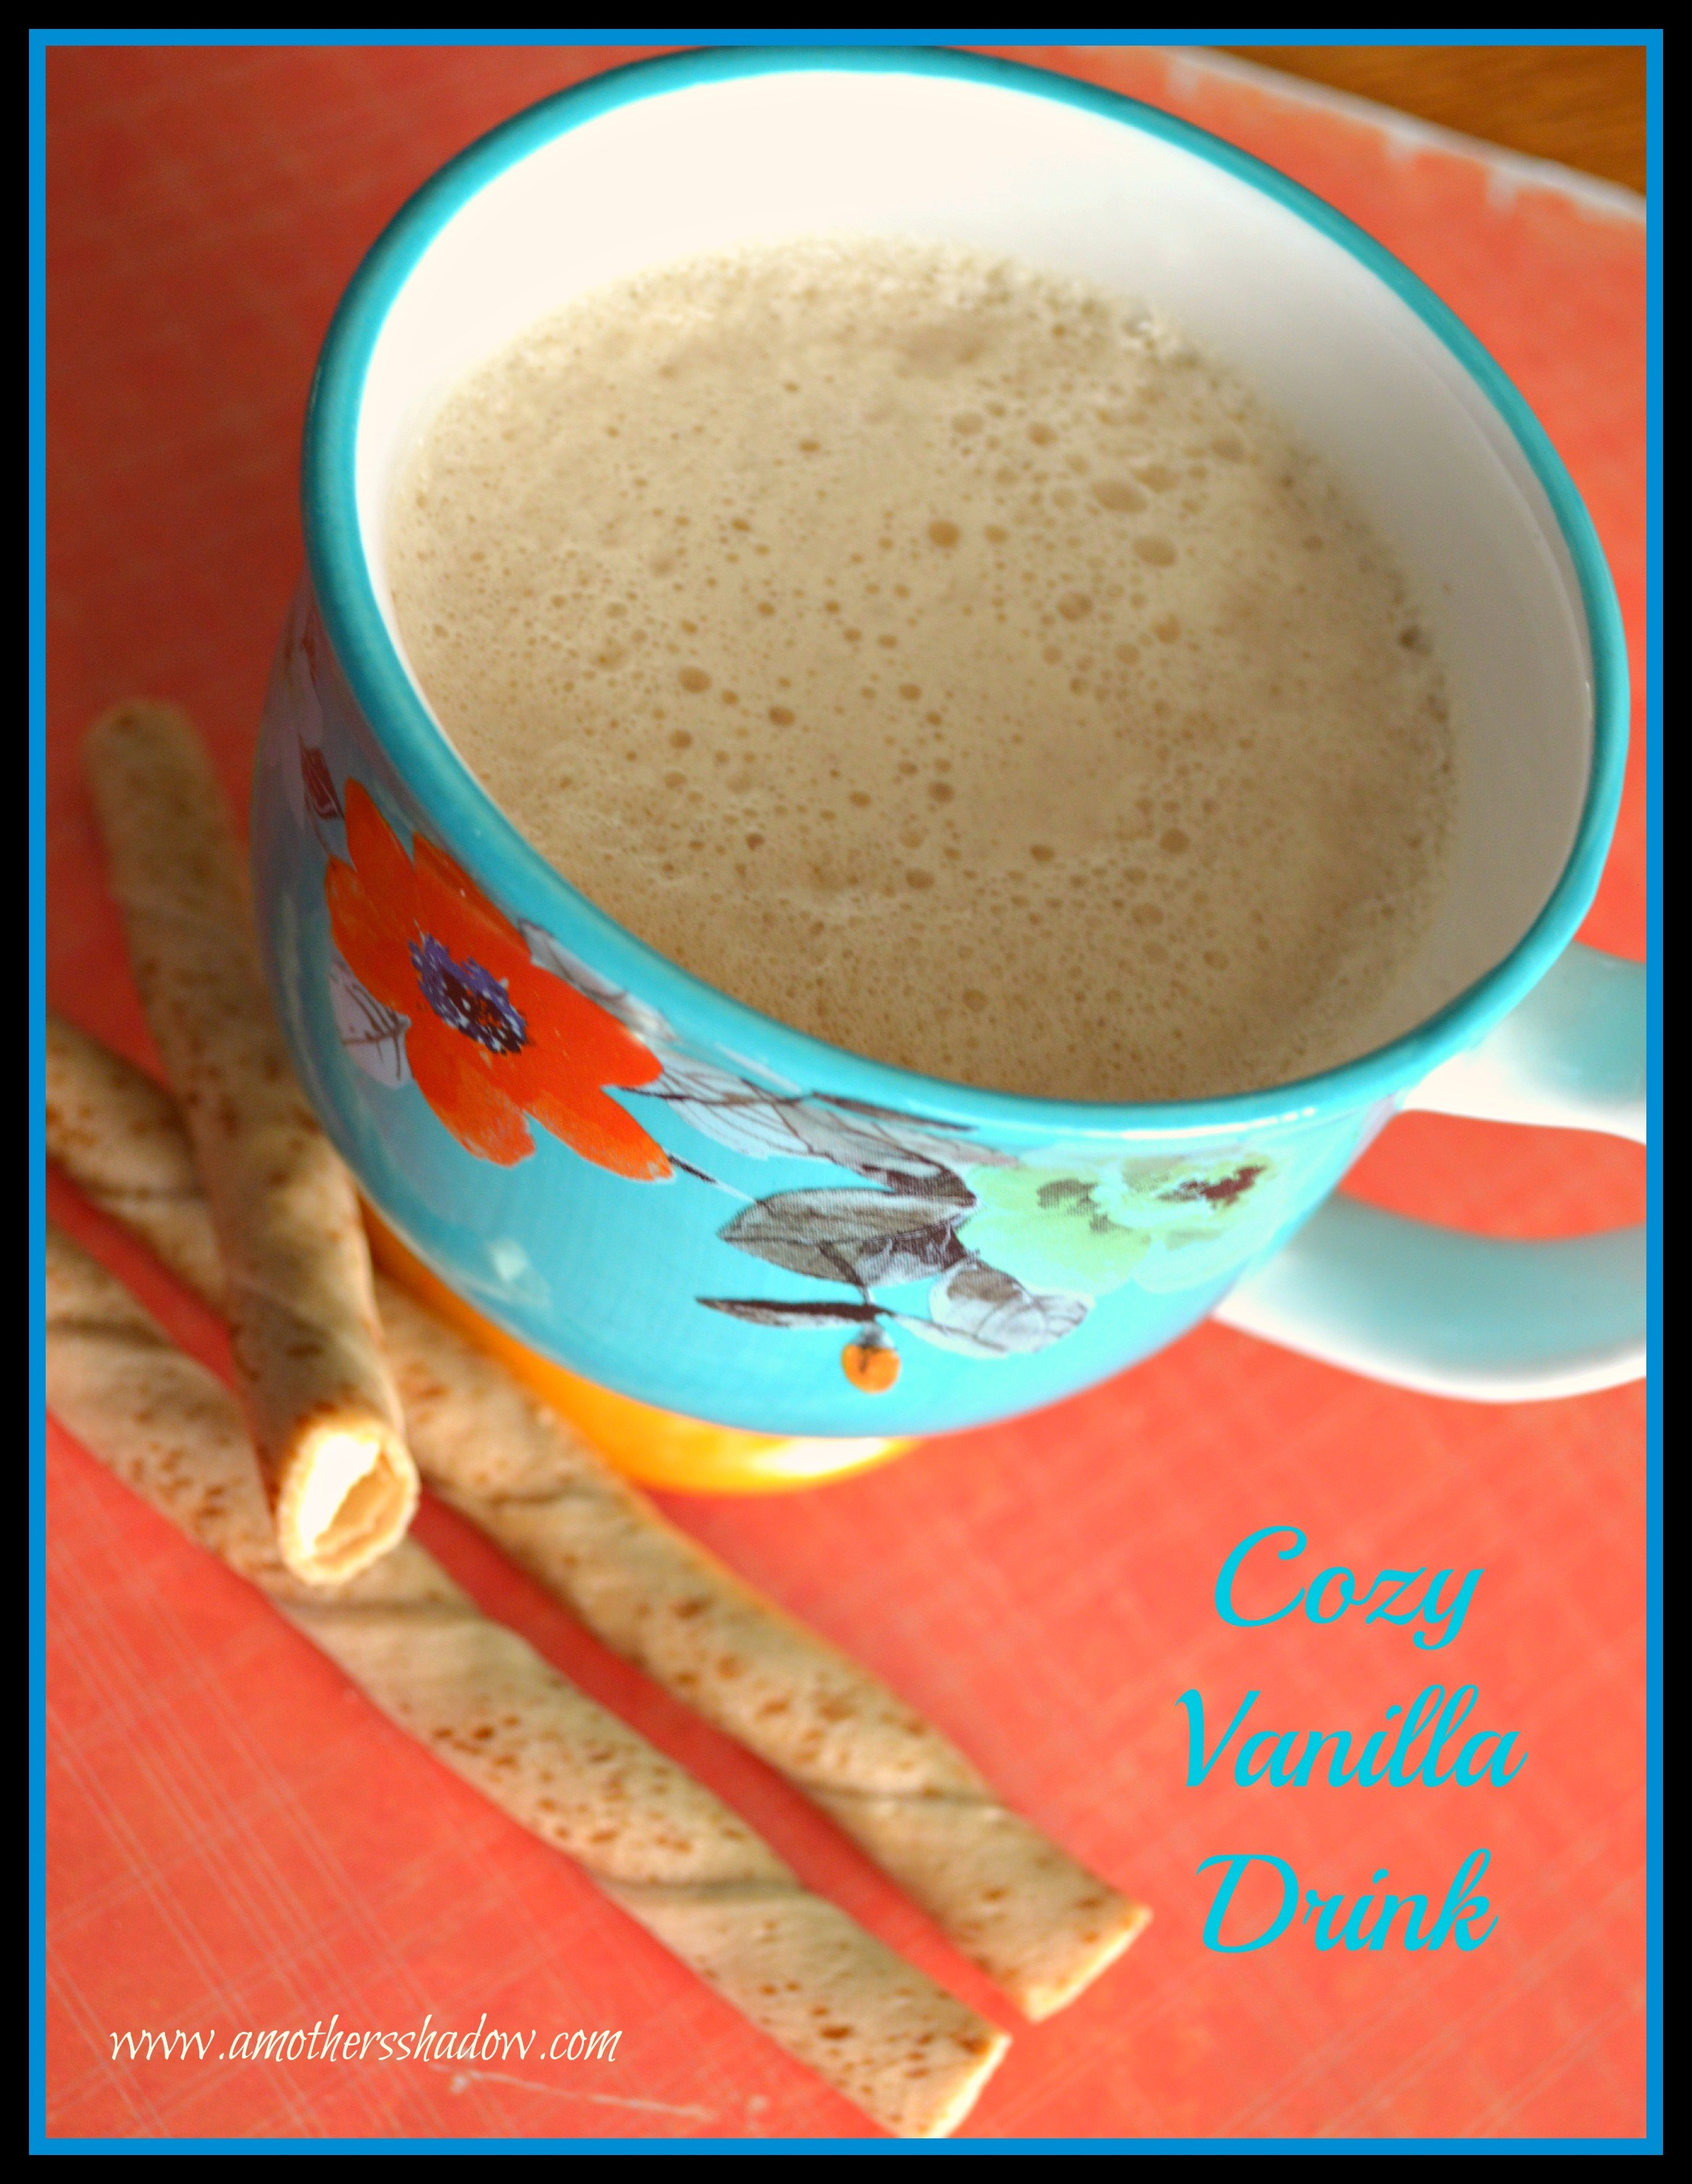 Cozy Vanilla Drink 1